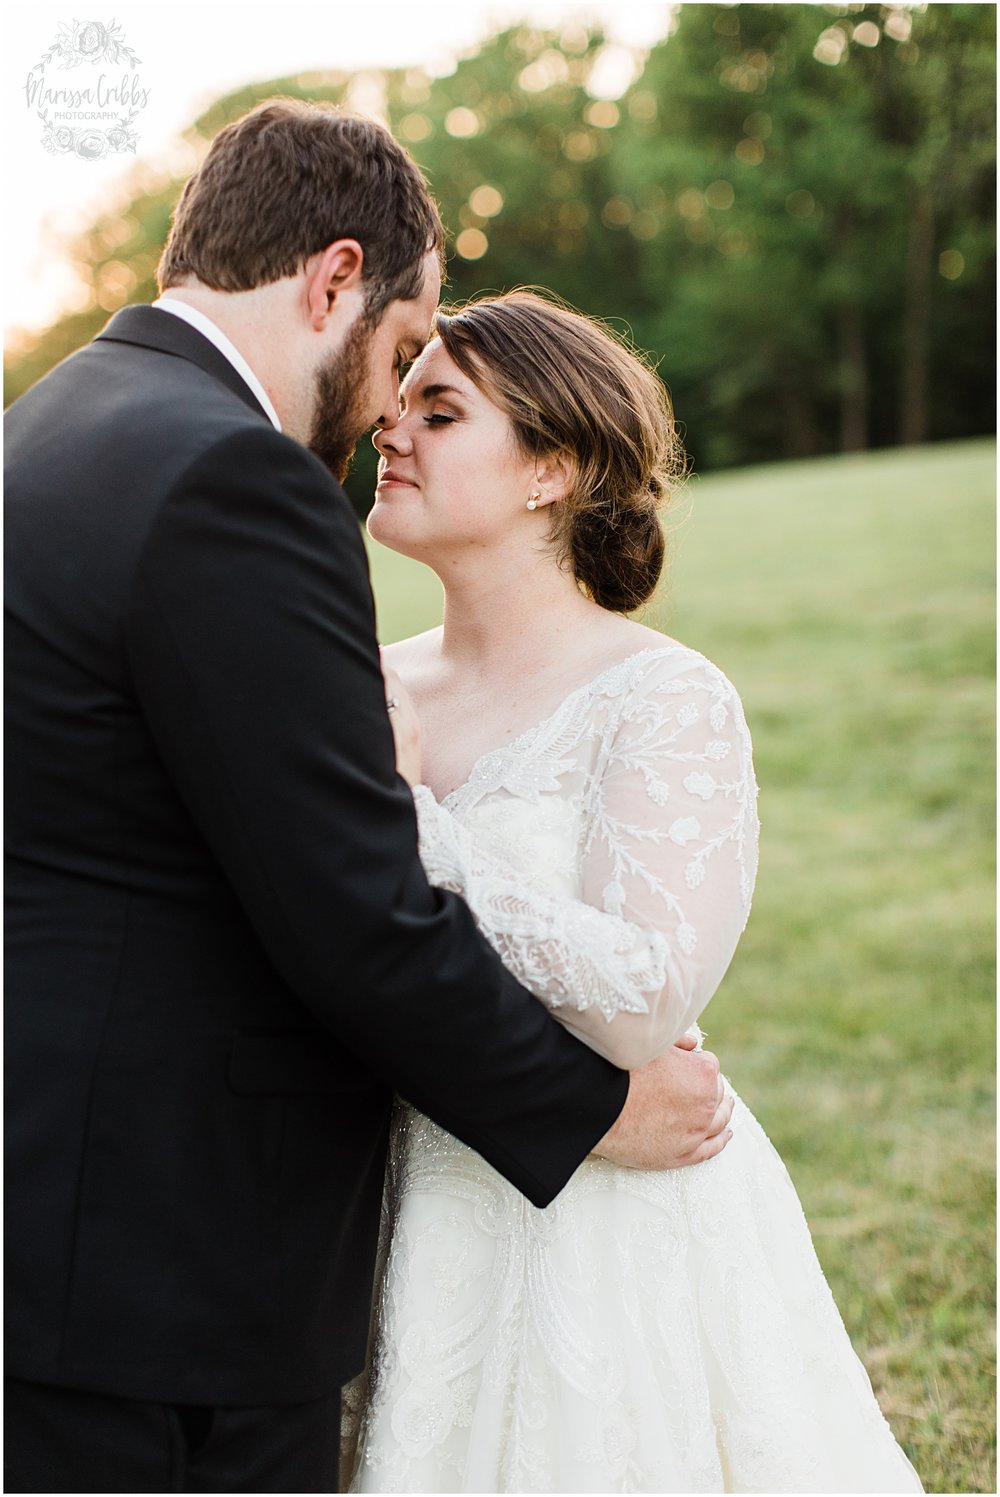 GORBY WEDDING | MARISSA CRIBBS PHOTOGRAPHY_5134.jpg